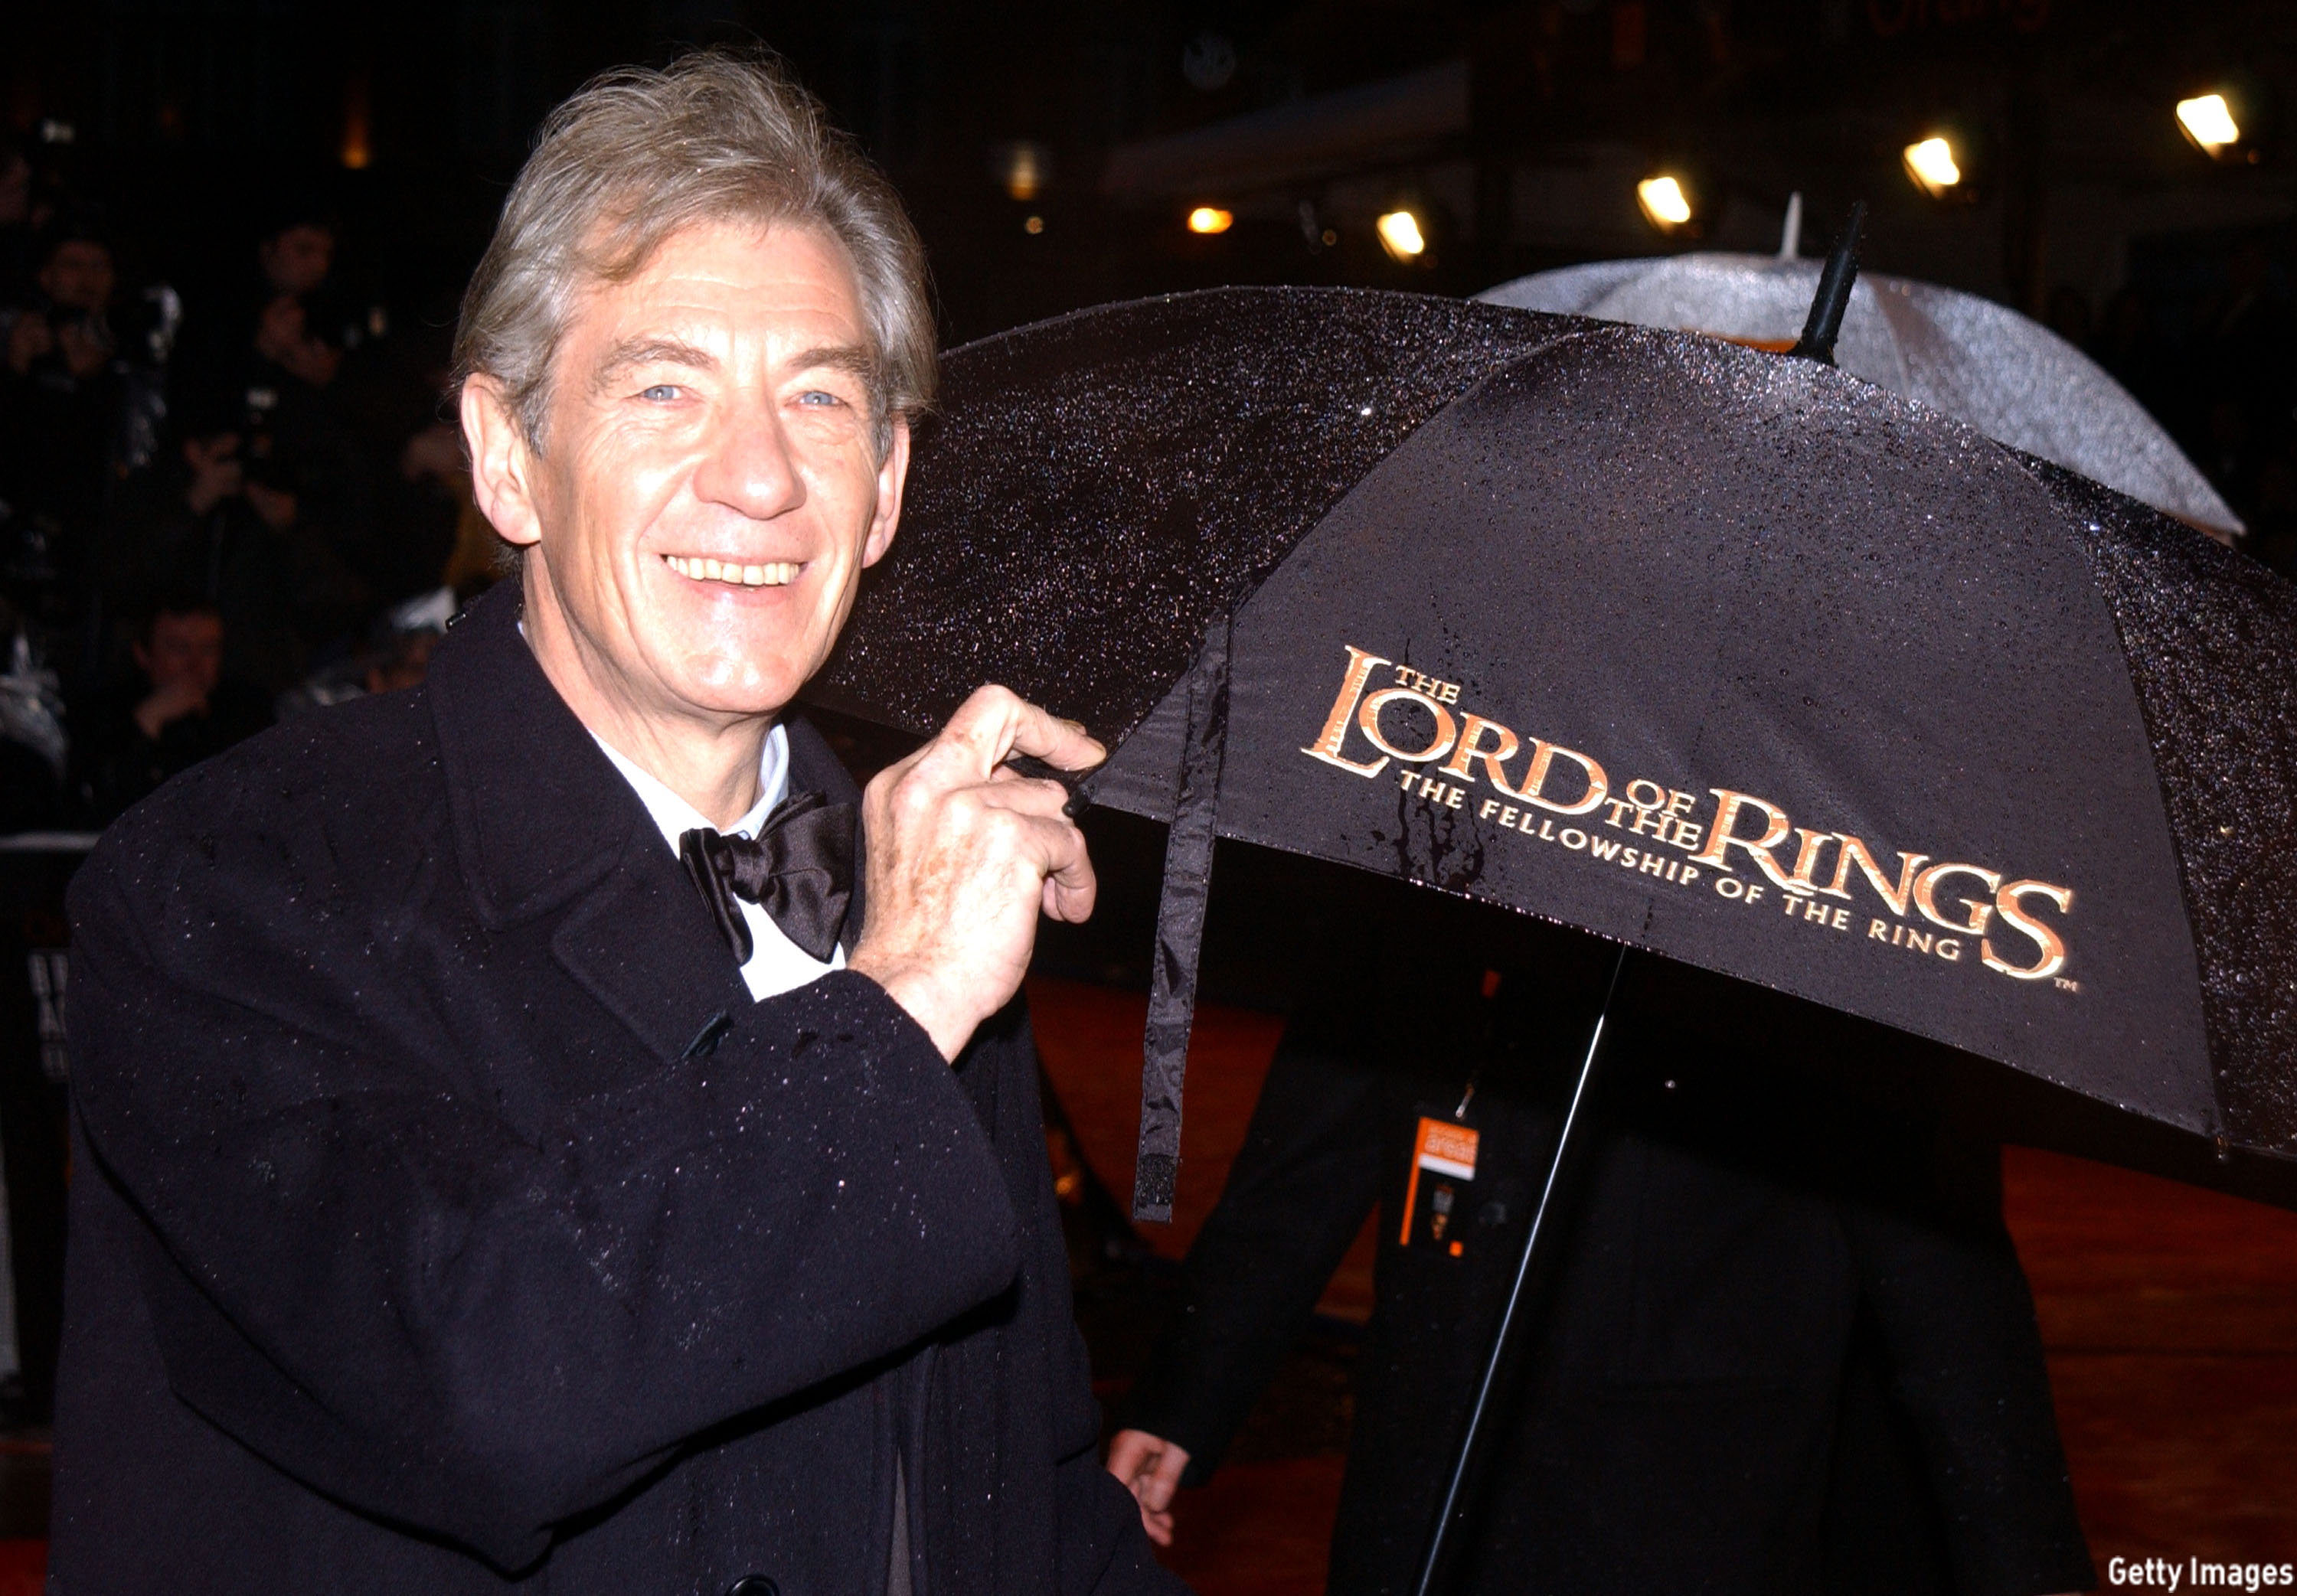 McKellen arrived to the 2002 British Academy Film Awards with a decked-out umbrella. (Anthony Harvey/Getty Images)